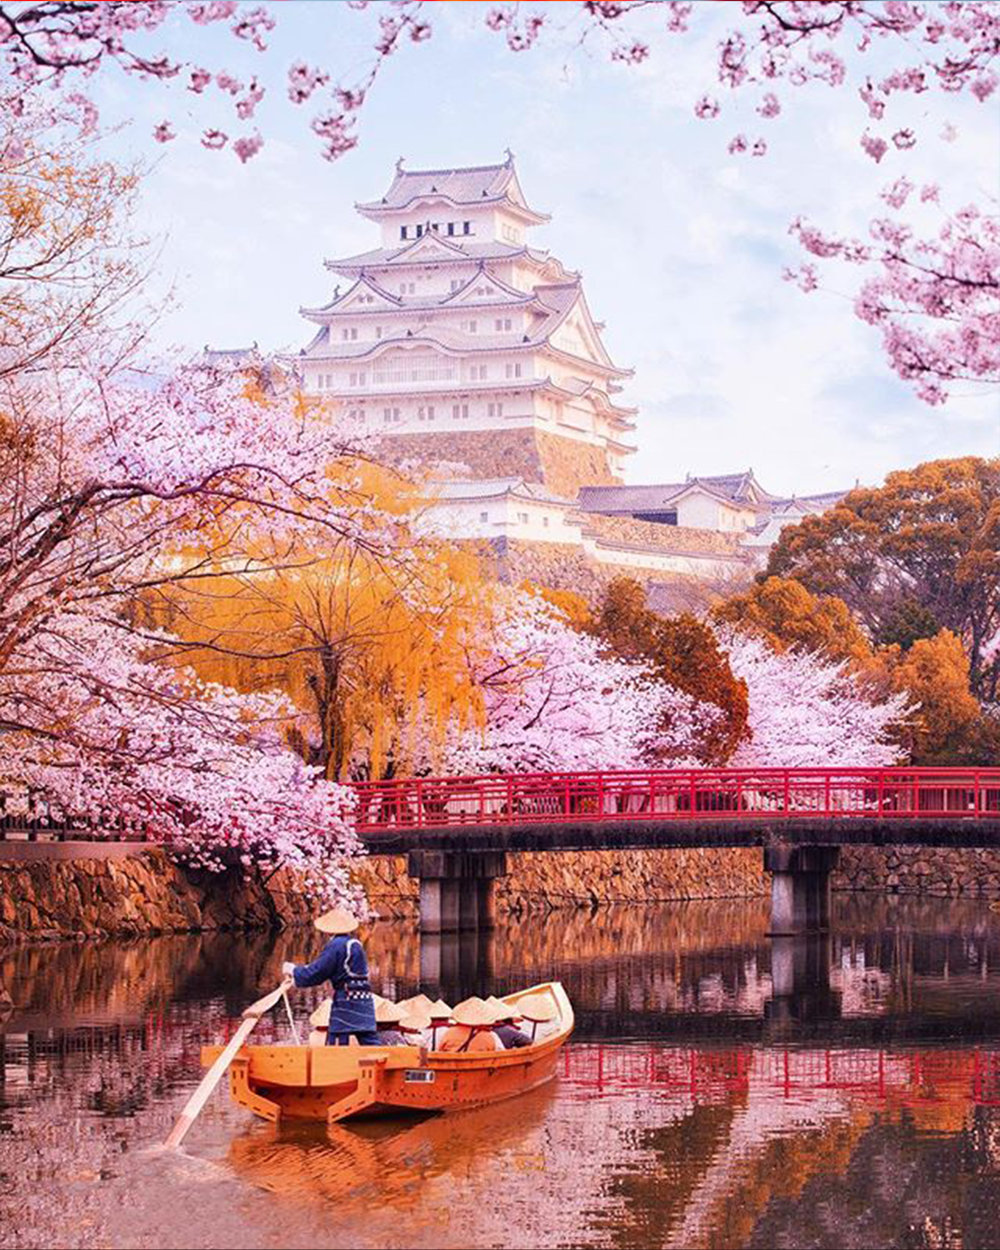 @MikeVisuals  got to visit Japan in the spring where the Sakura (cherry blossoms) bloom for a few weeks. They come and go extremely quickly so plan wisely!